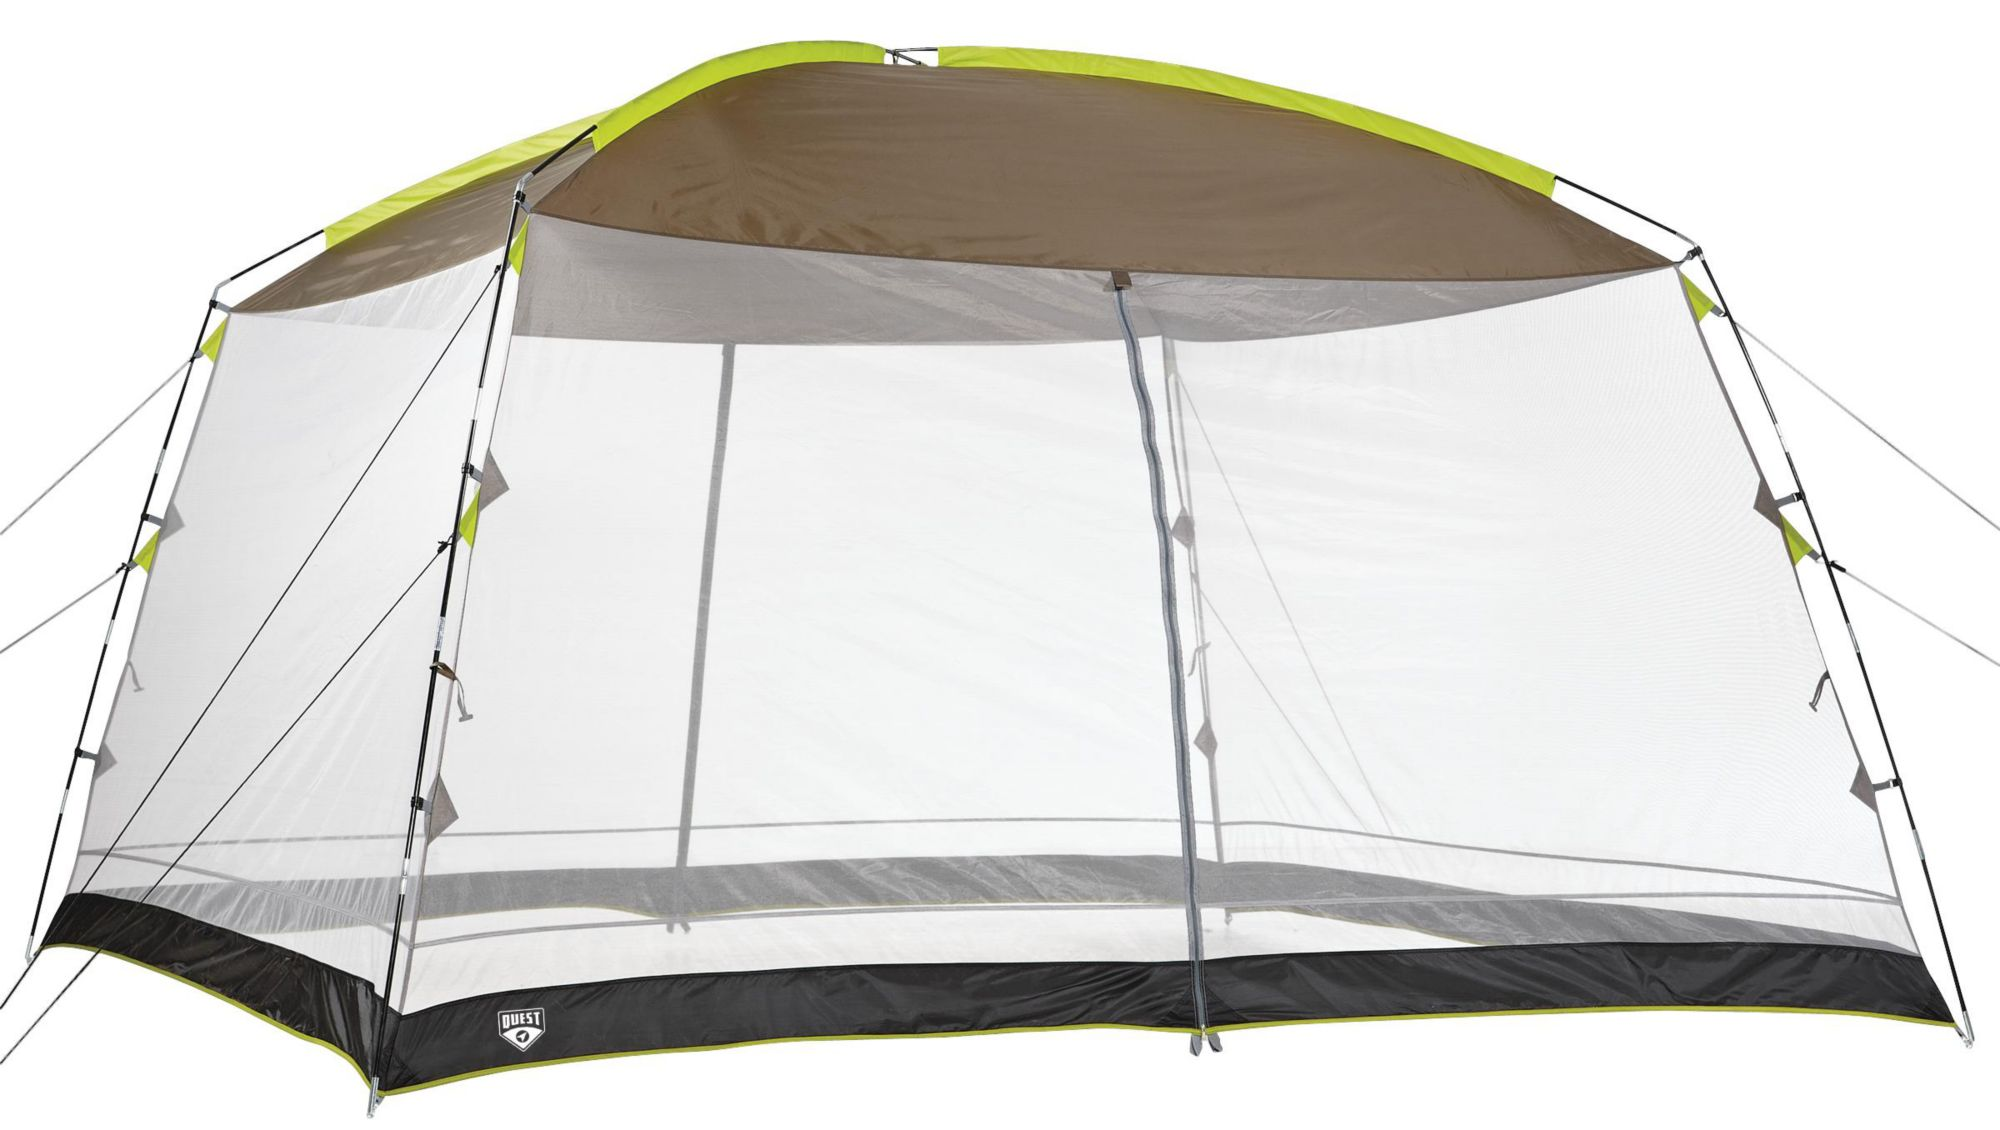 Tents With Screen Rooms Amp Amazon Com Core 11 Person Cabin